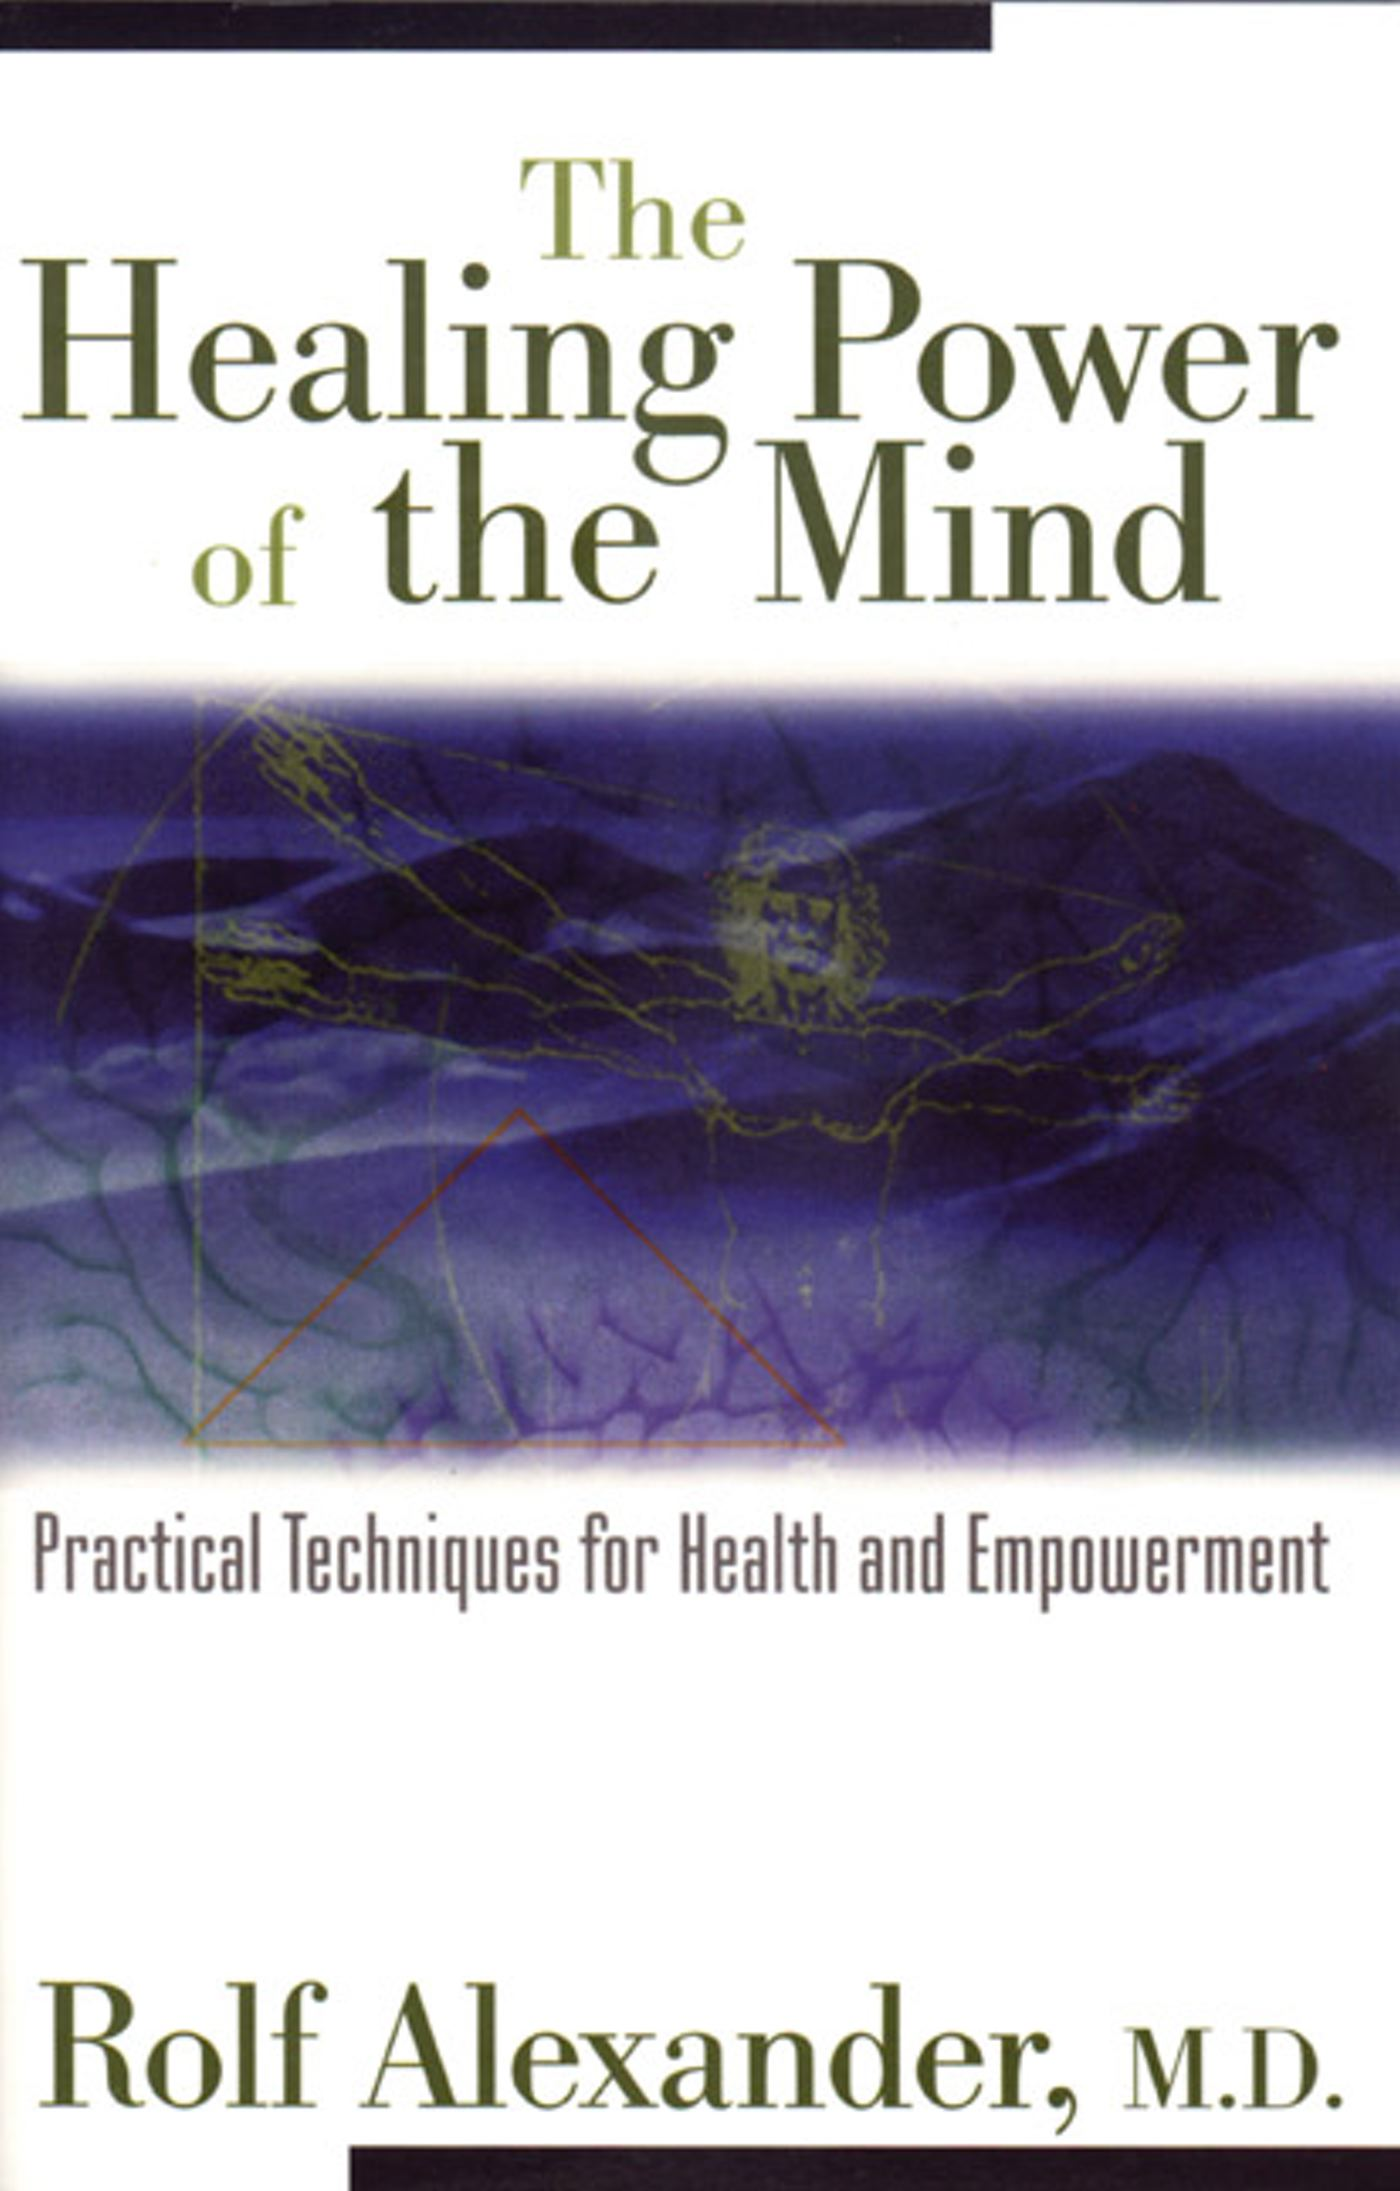 The healing power of the mind 9780892817290 hr